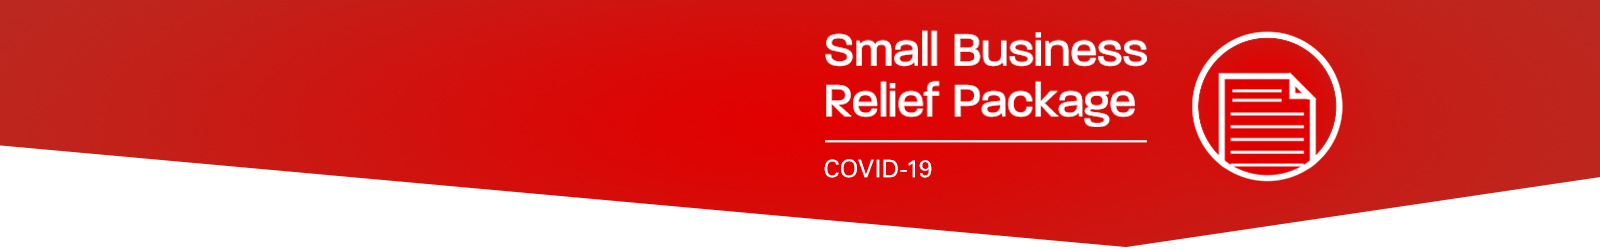 Small business releif-covid19 banner